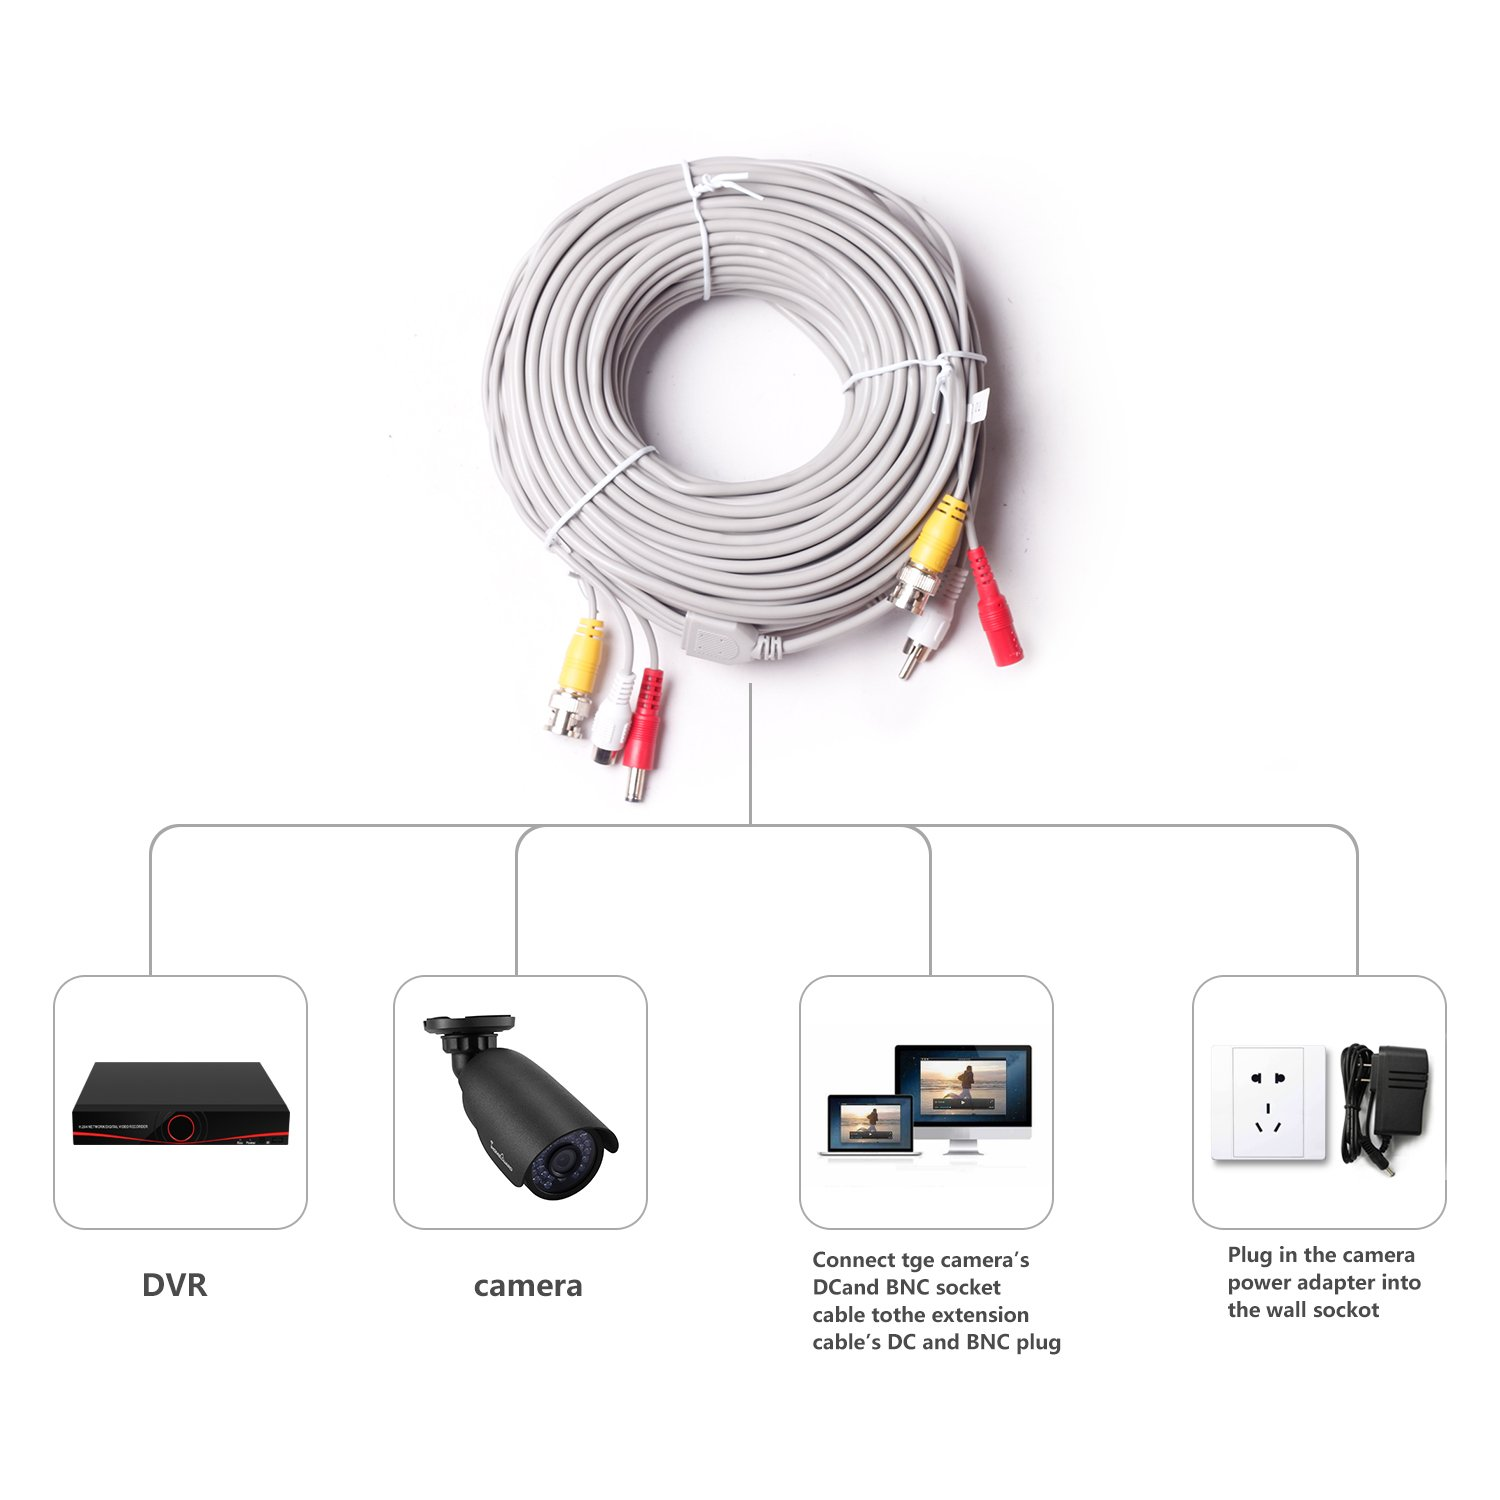 IHOMEGUARD 100Ft HD Pre-made All-in-One Audio Video Security Camera Cable  Power Extension Wire Cord with BNC RCA Connectors for 1080P 720P 960P 960H  CCTV ...